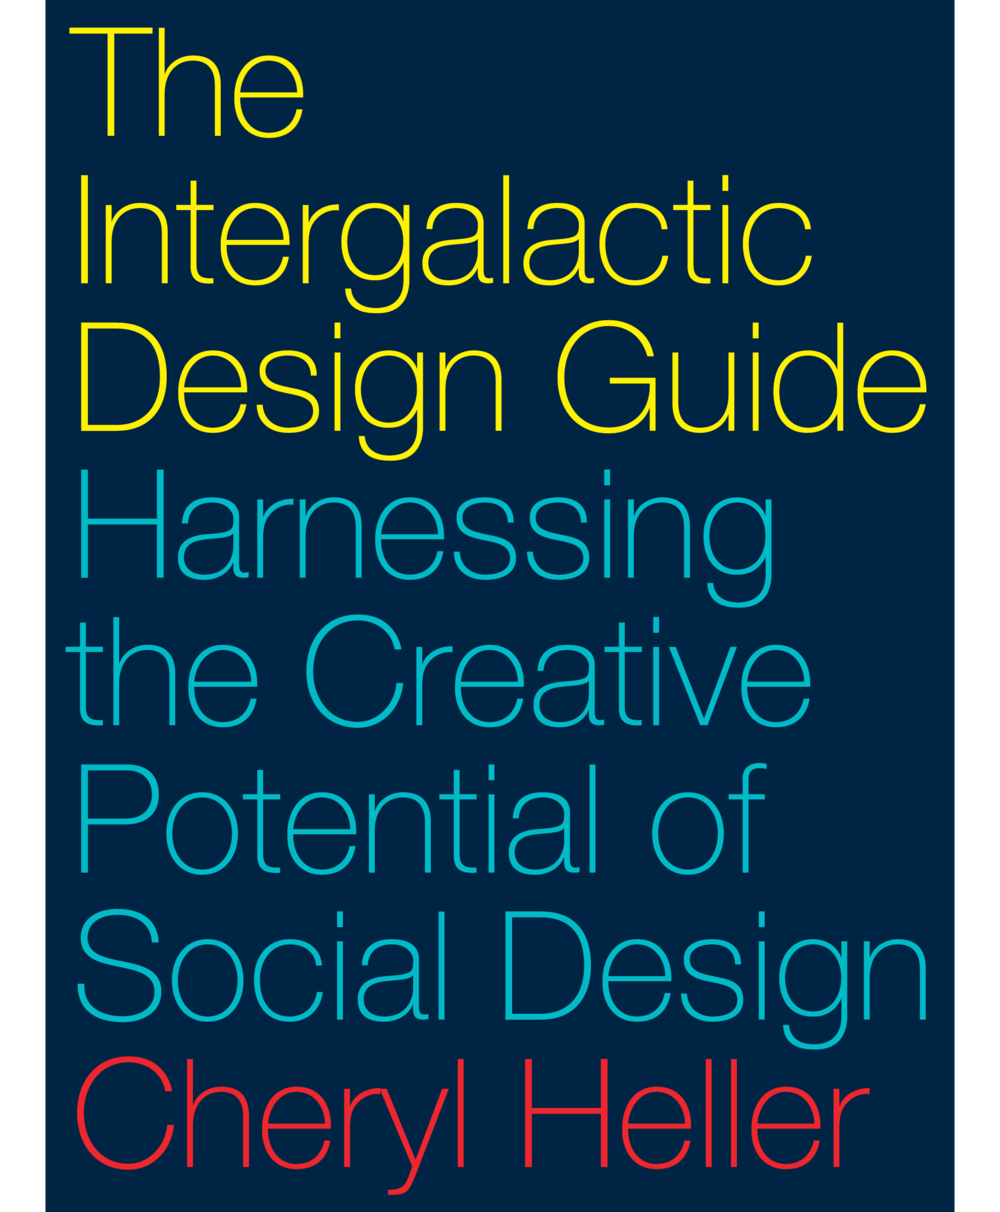 9781610918817_Heller_The Intergalactic Design Guide copy copy.png